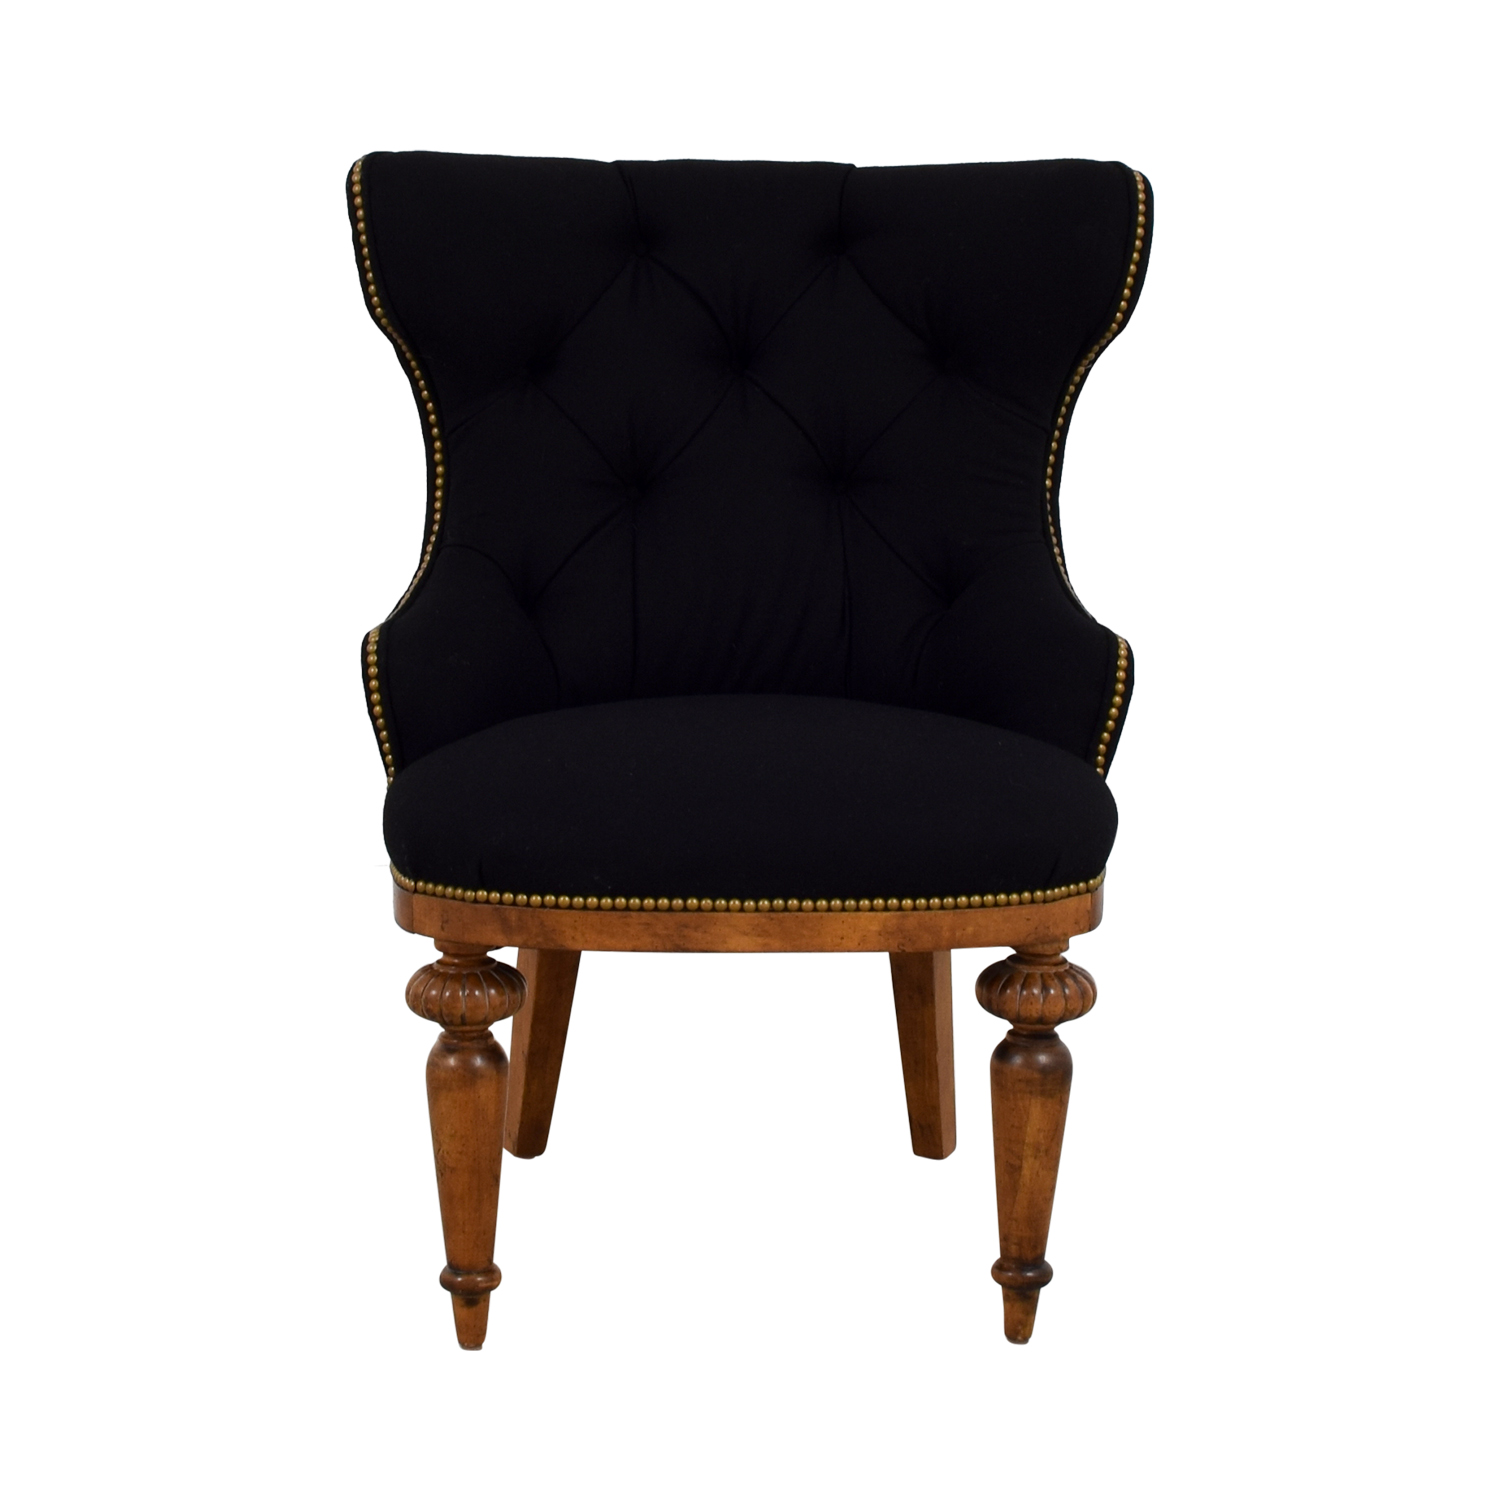 Furniture Masters Furniture Masters Black Tufted Nailhead Accent Chair dimensions